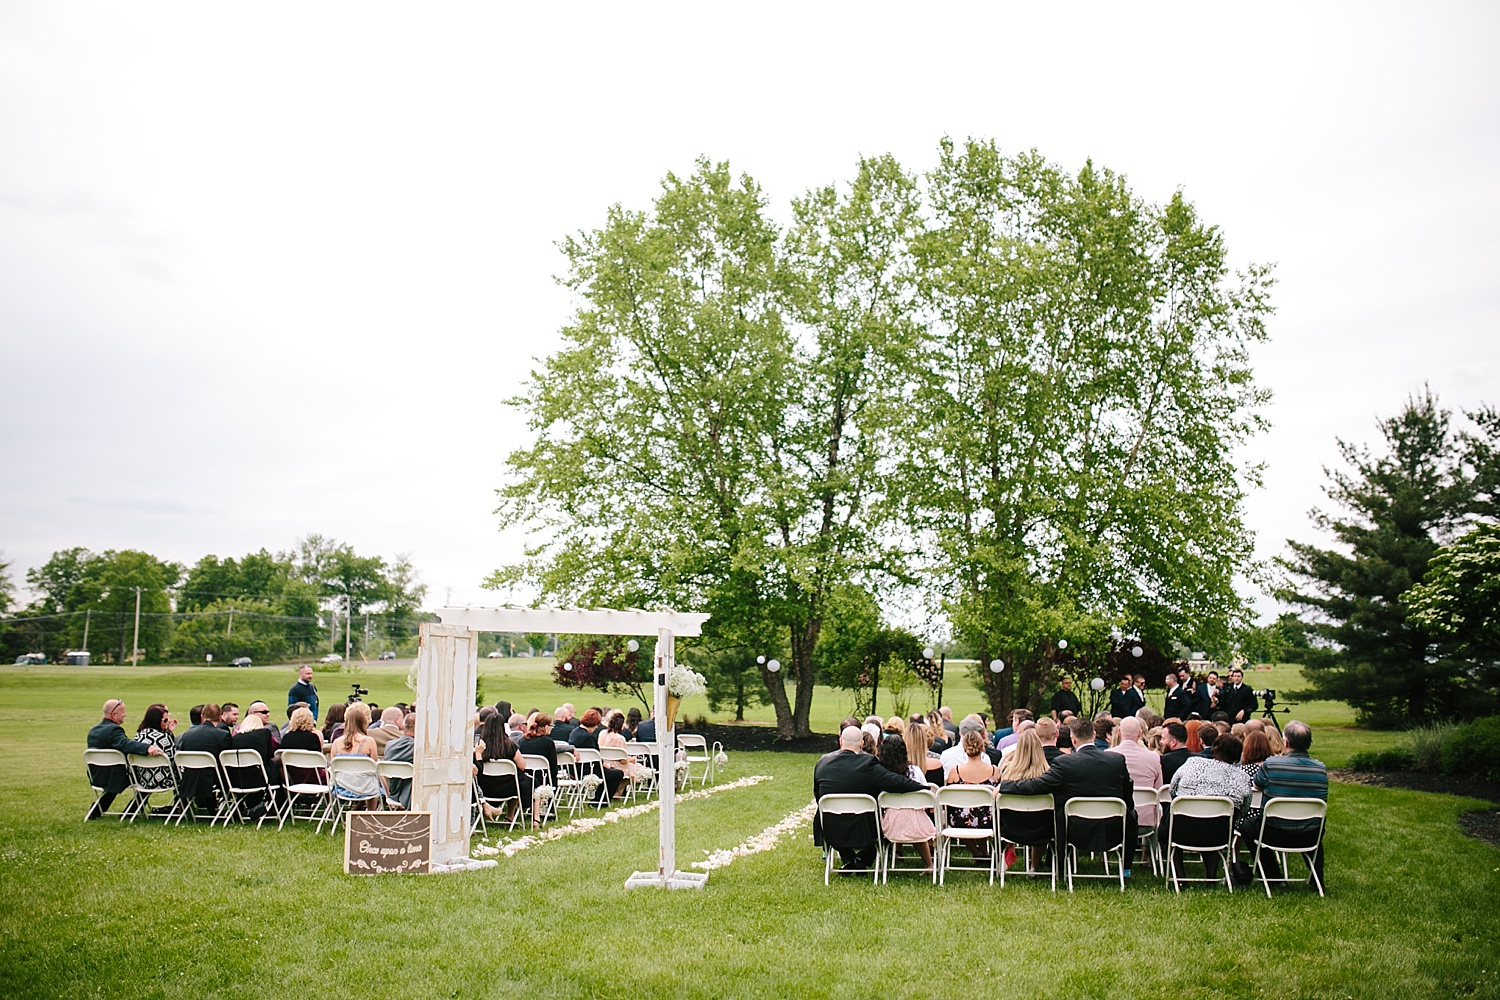 kellishawn_rosebankwinery_newtown_buckscounty_summer_wedding_image024.jpg